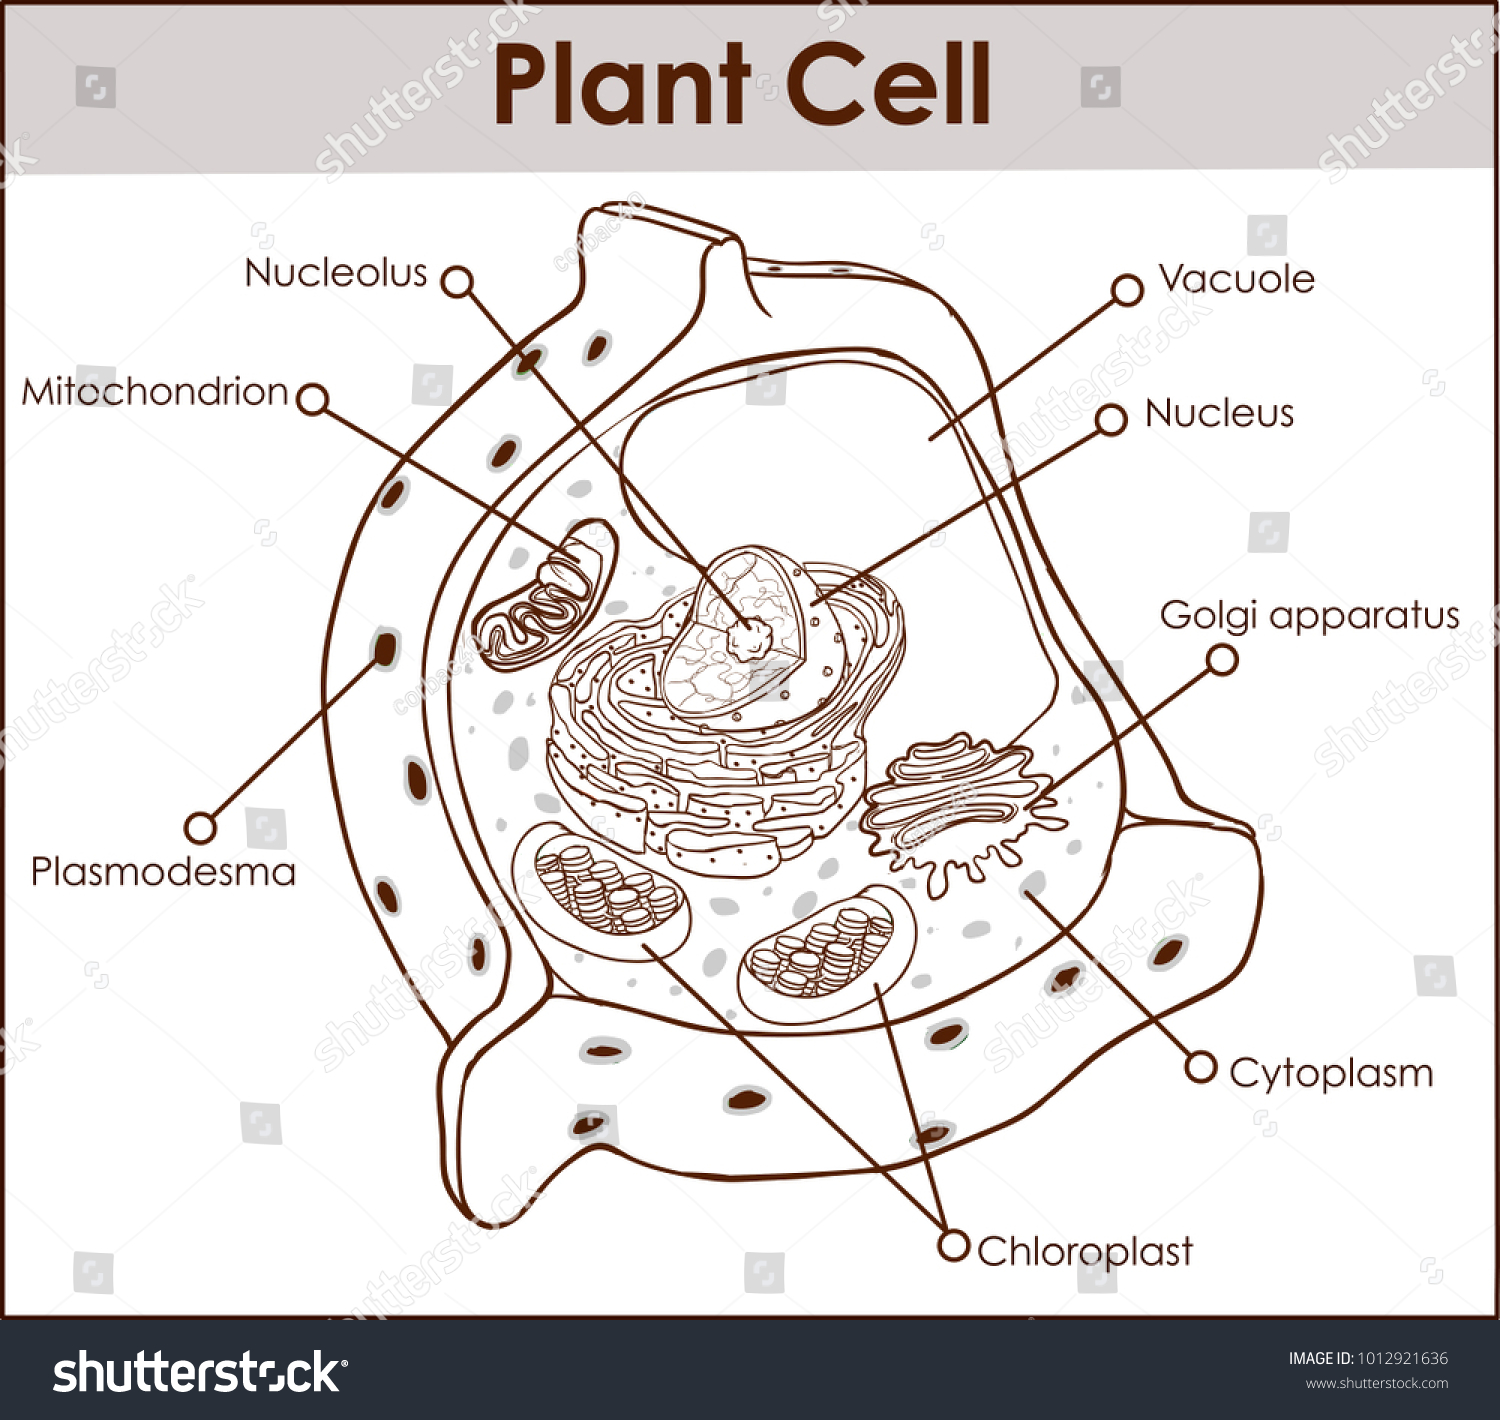 Plant cell anatomy diagram structure all stock vector 1012921636 plant cell anatomy diagram structure with all part nucleus smooth rough endoplasmic reticulum cytoplasm golgi apparatus ccuart Gallery